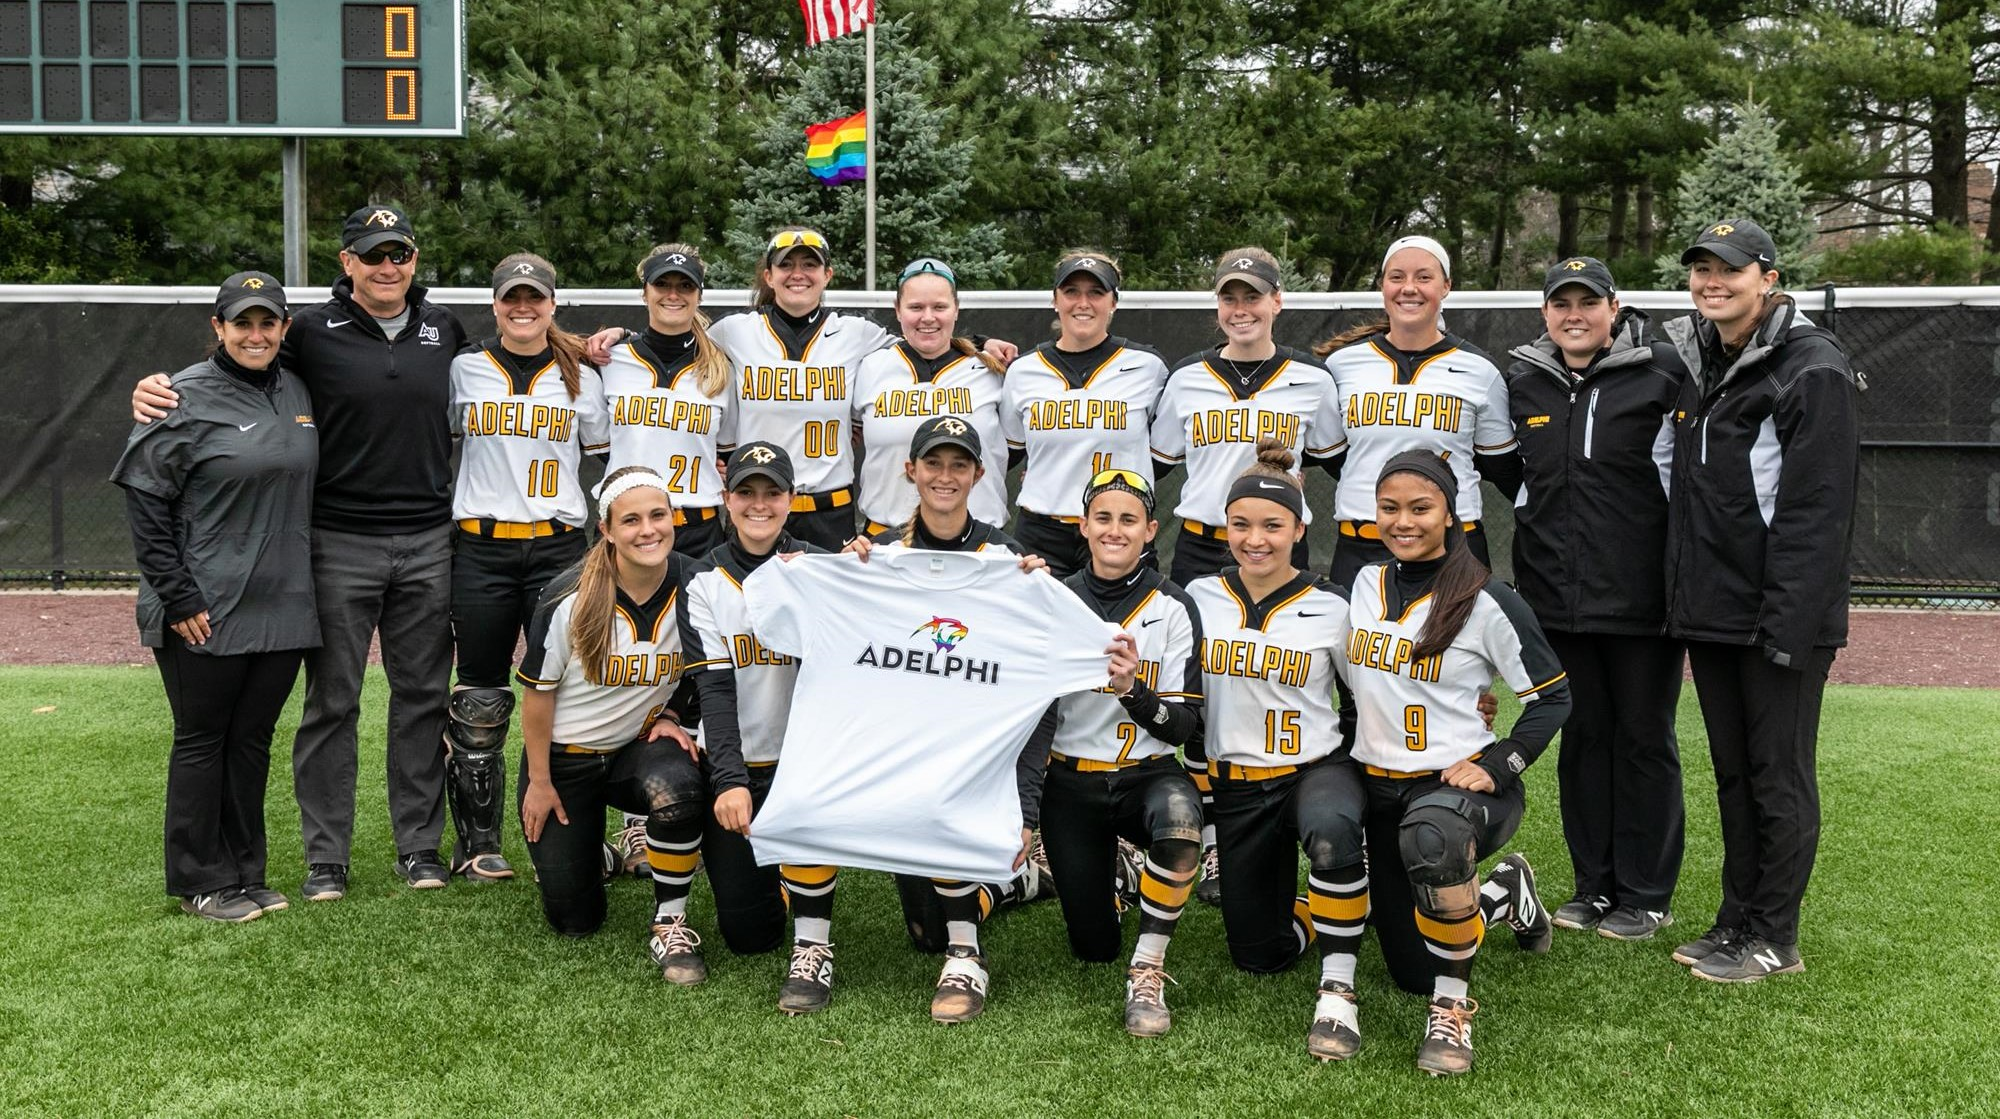 Softball Sweeps SCSU on Pride at the Park Day, 5-0 and 8-0